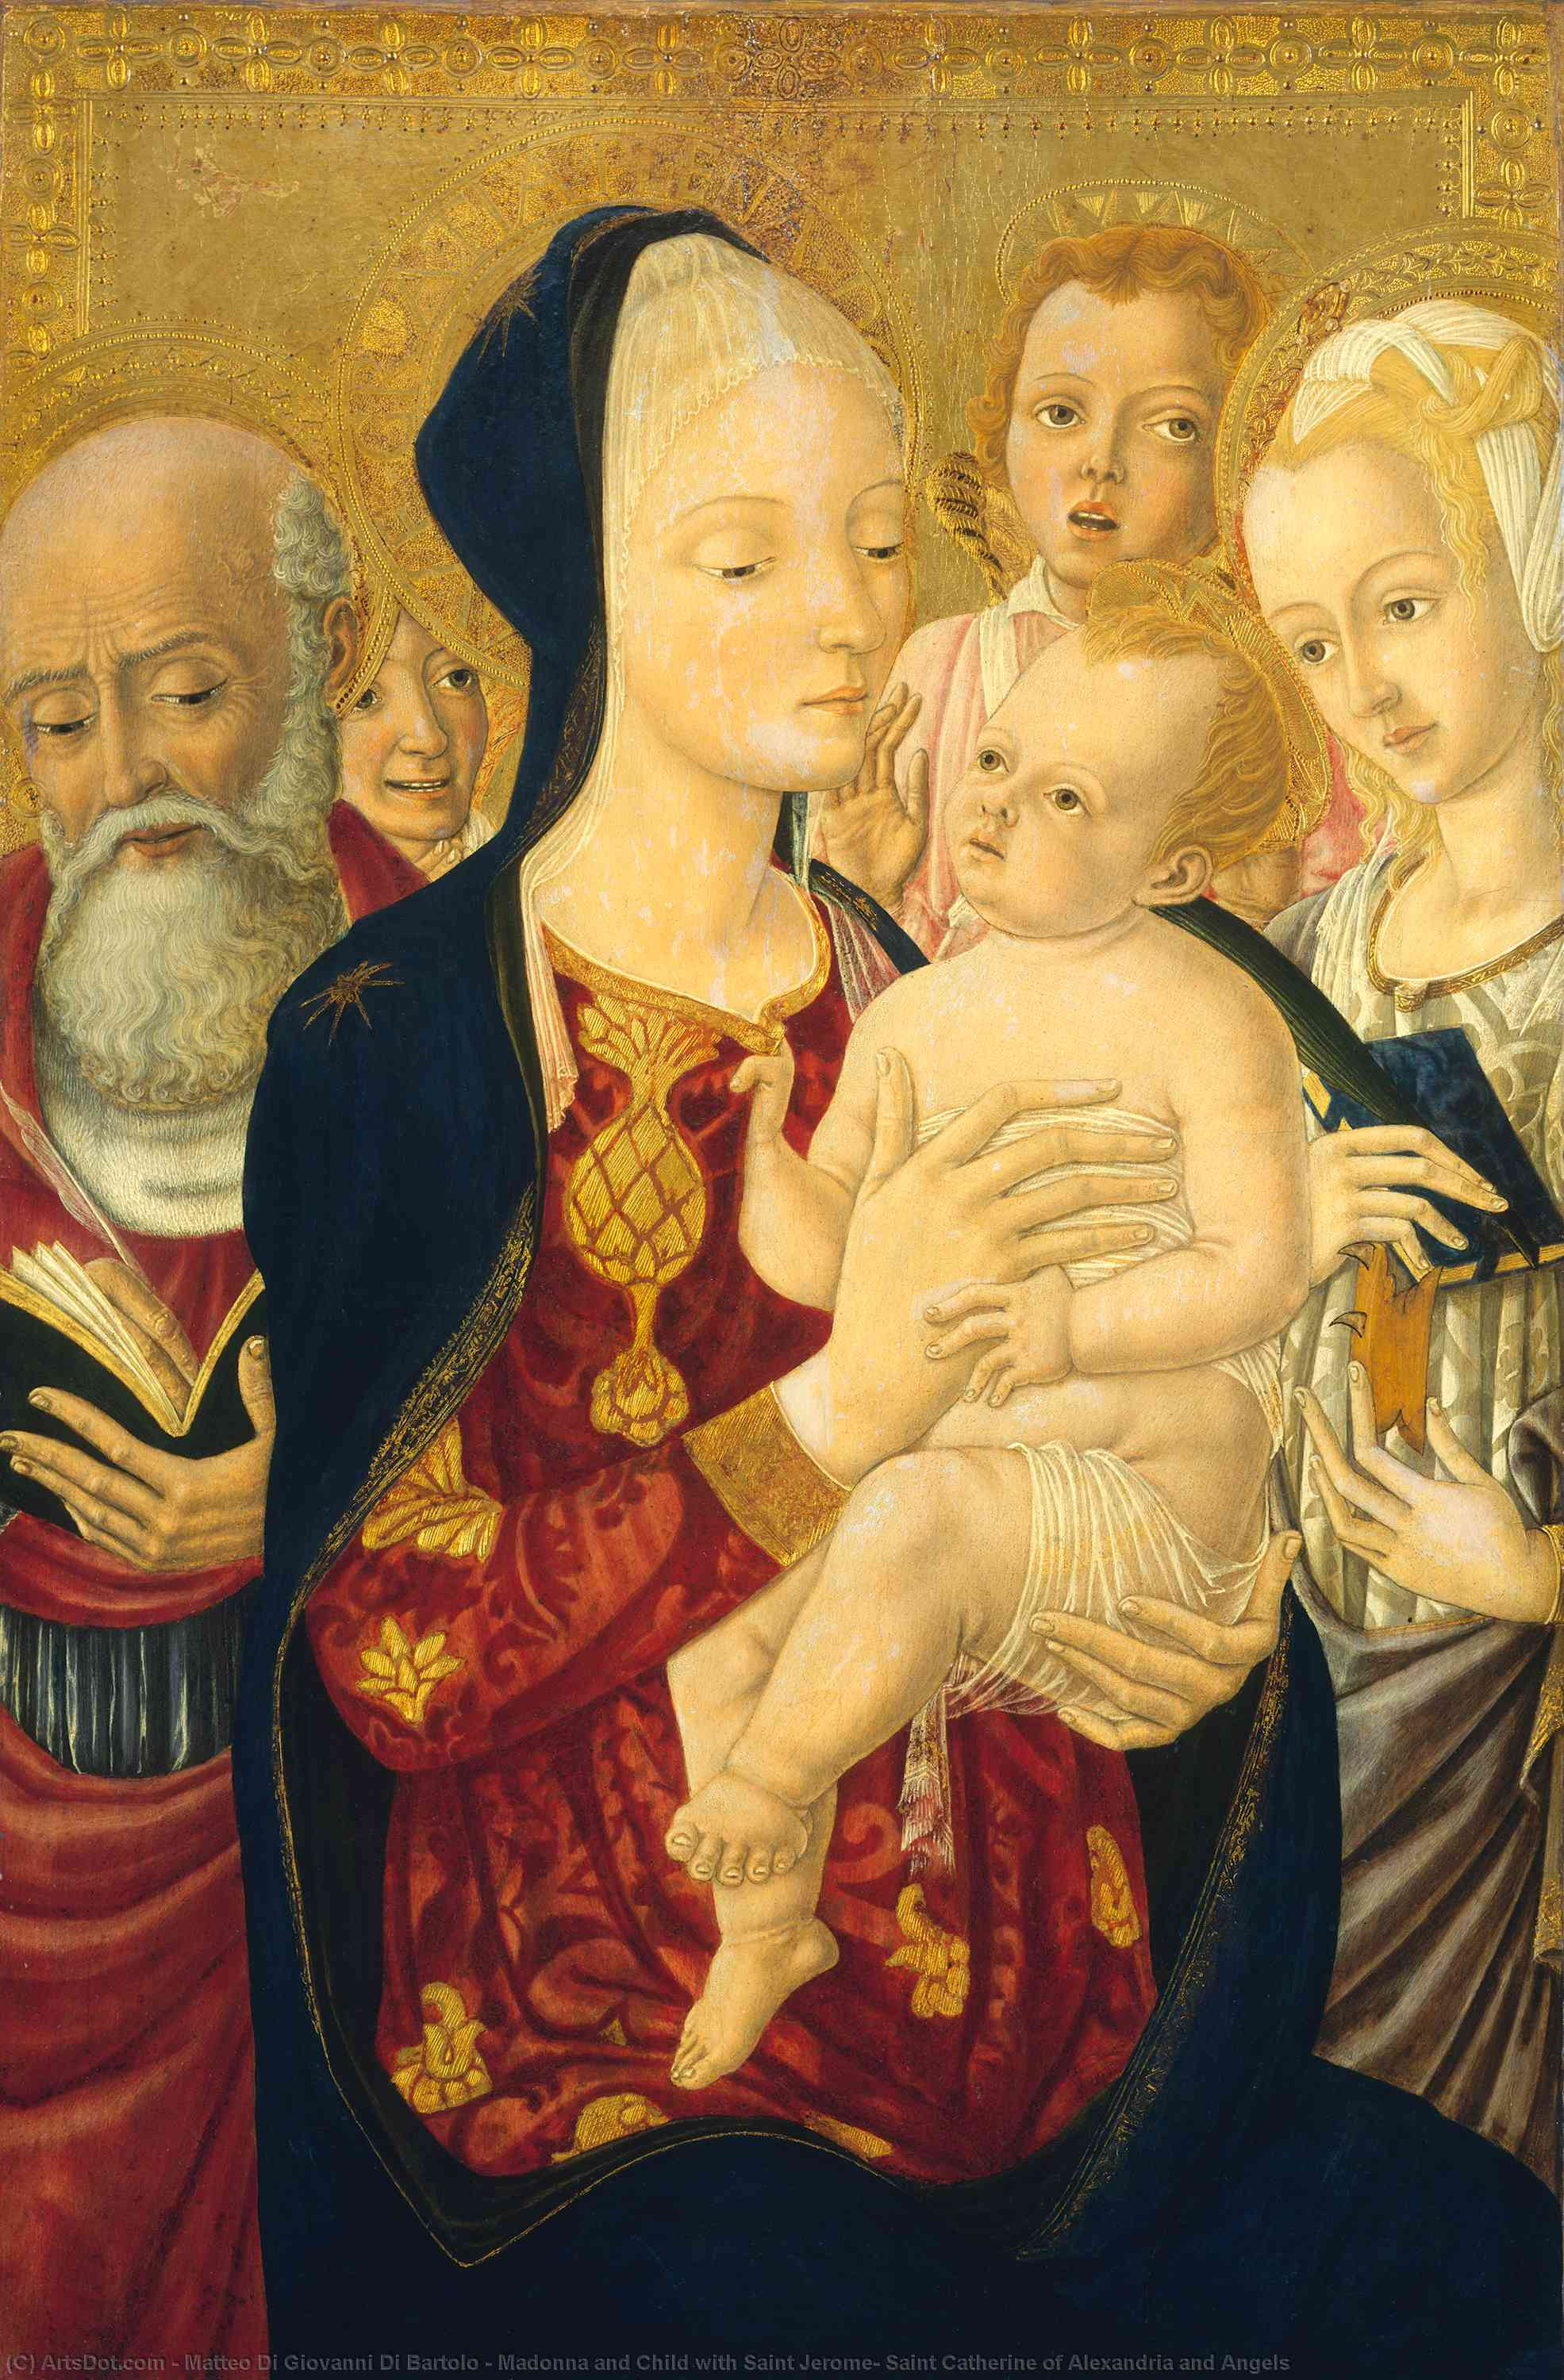 Wikioo.org - The Encyclopedia of Fine Arts - Painting, Artwork by Matteo Di Giovanni Di Bartolo - Madonna and Child with Saint Jerome, Saint Catherine of Alexandria and Angels